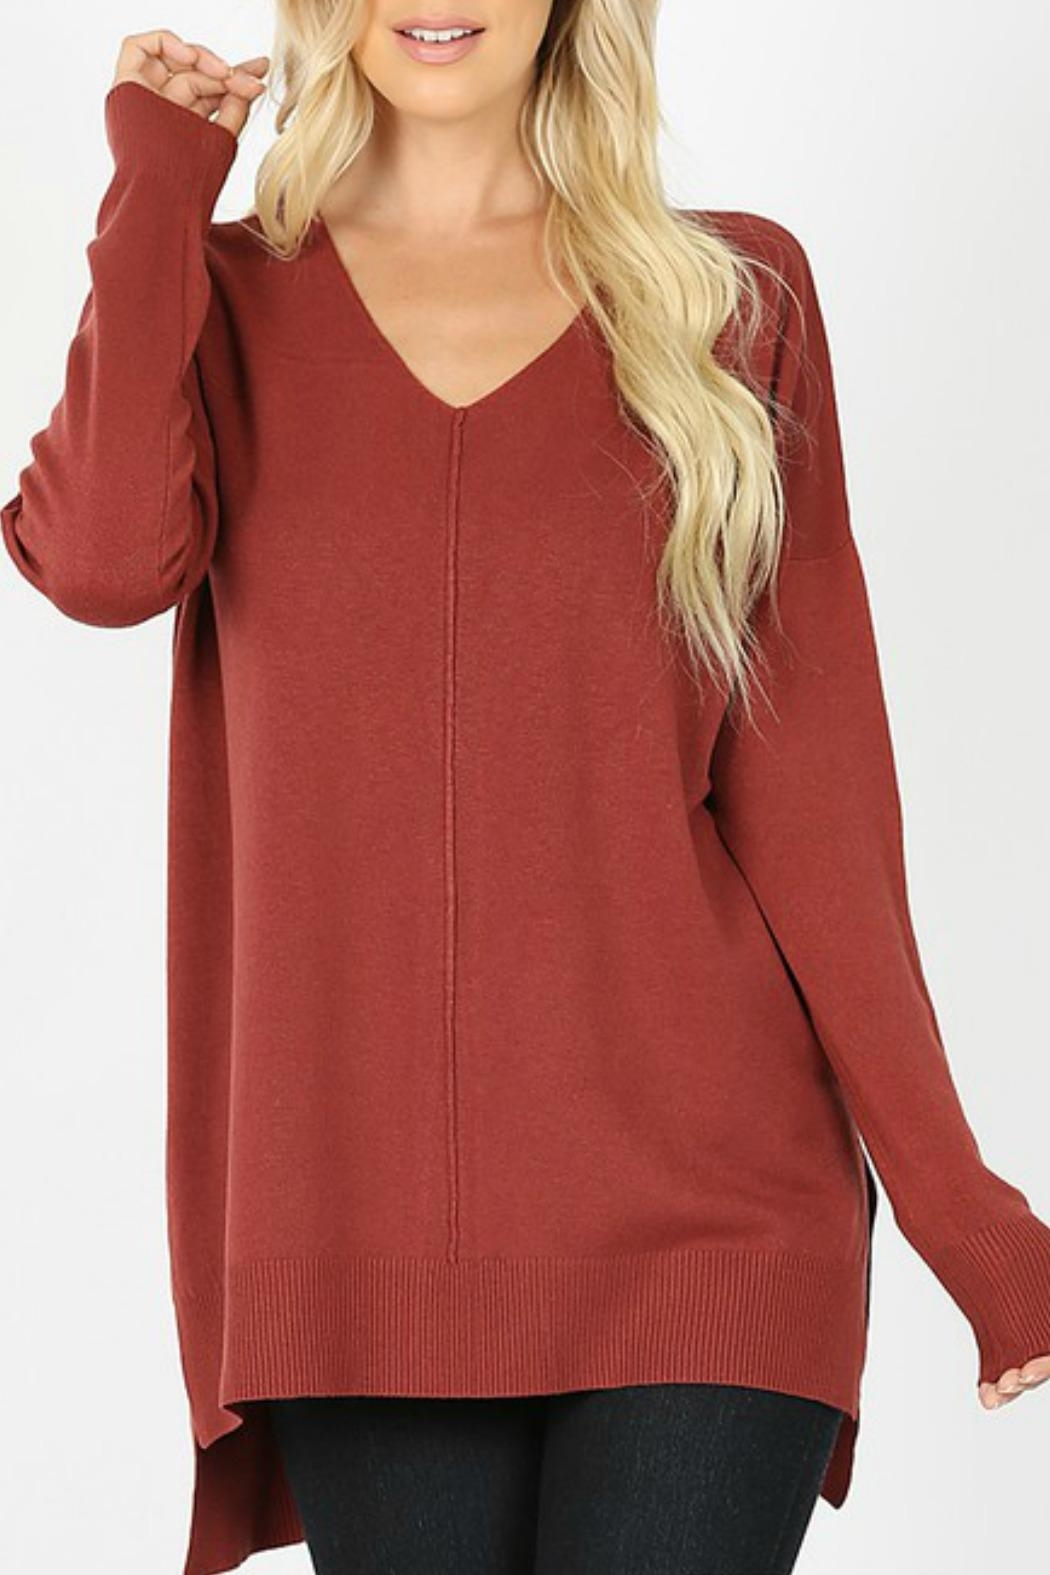 Zenana Outfitters Mellie V-Neck Sweater - Main Image